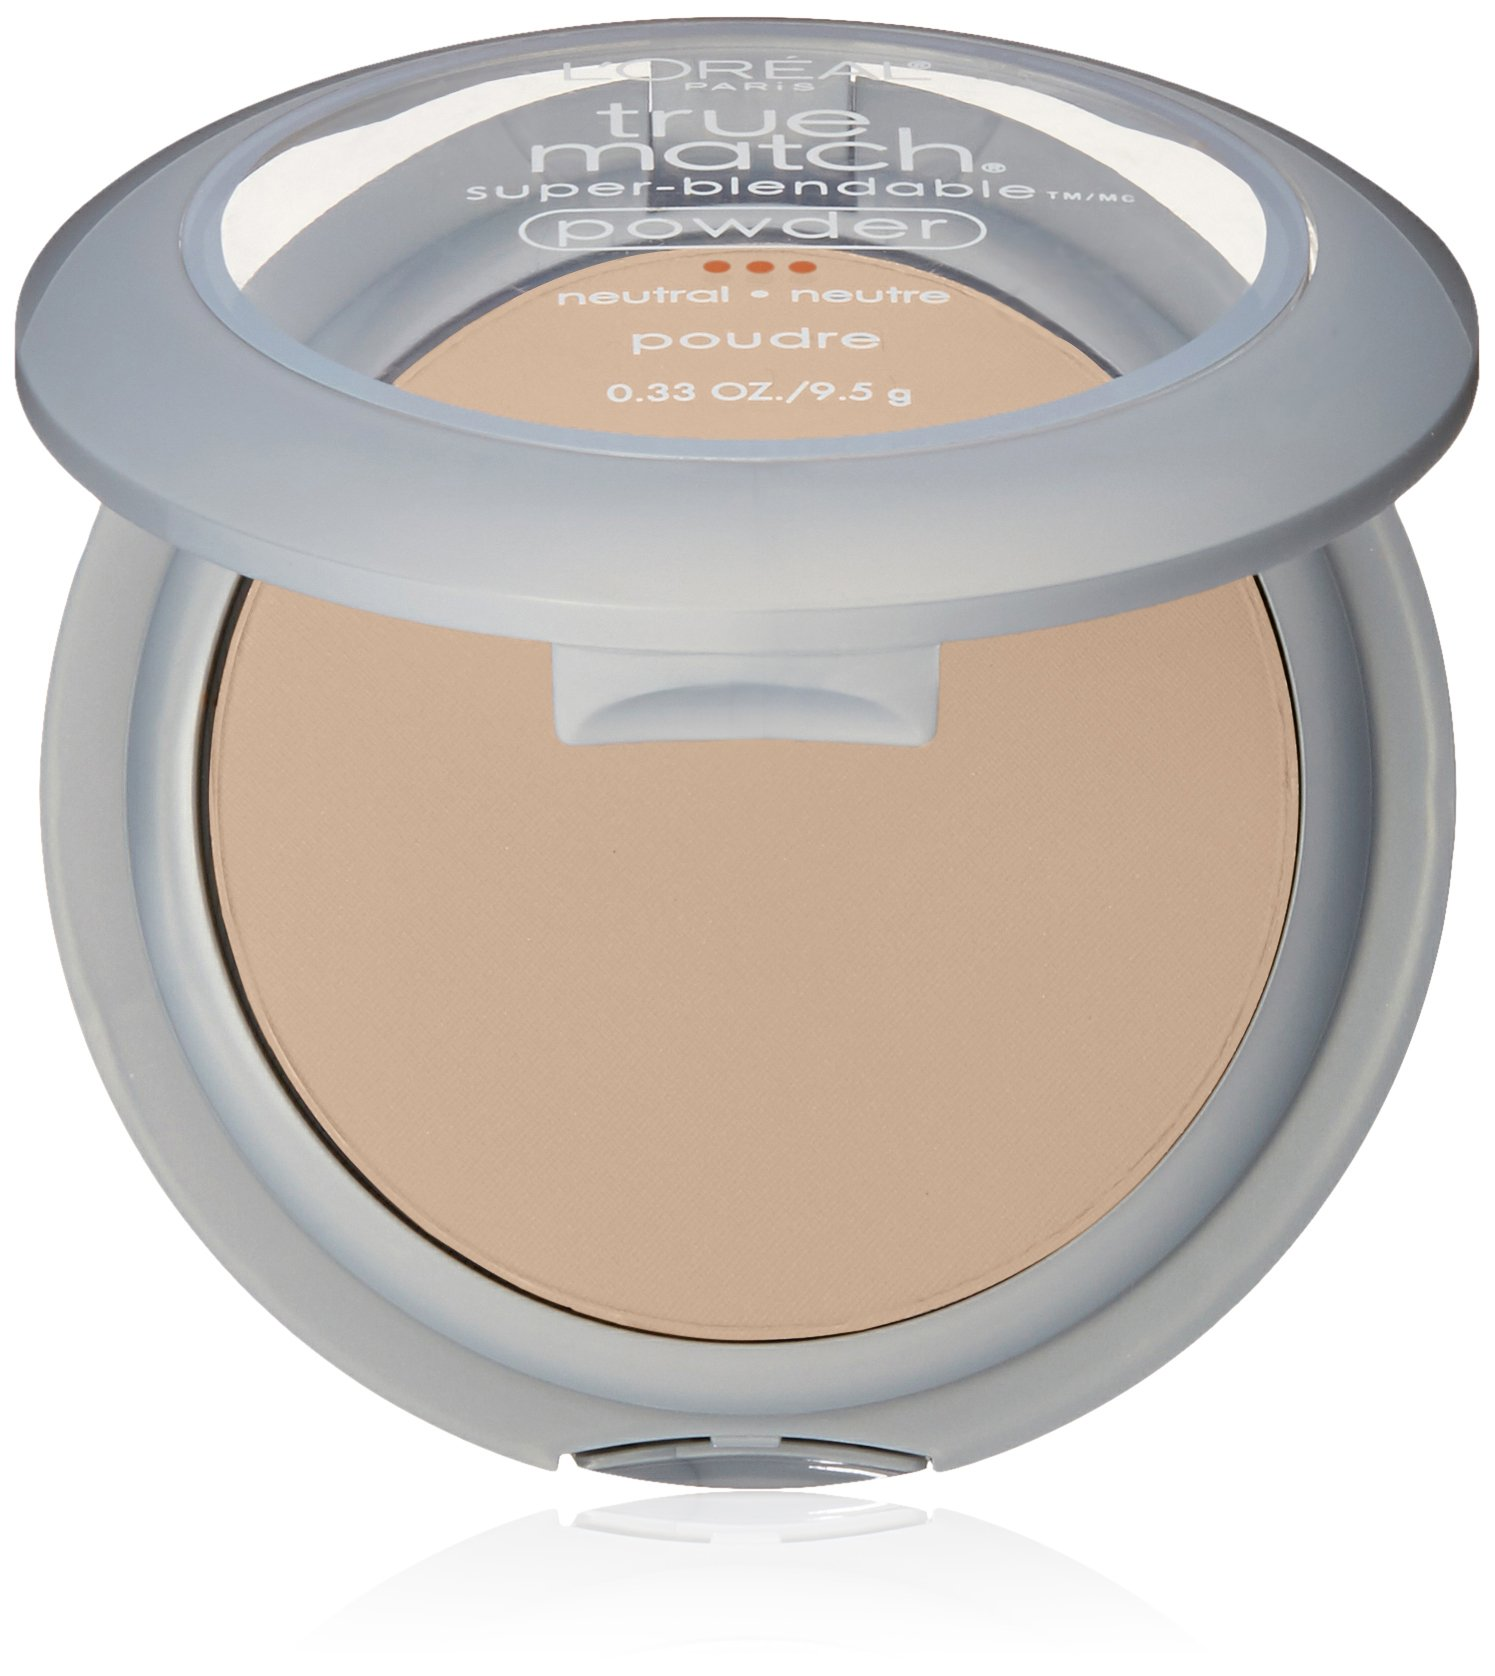 L'Oréal Paris True Match Super-Blendable Powder, Soft Ivory, 0.33 oz.